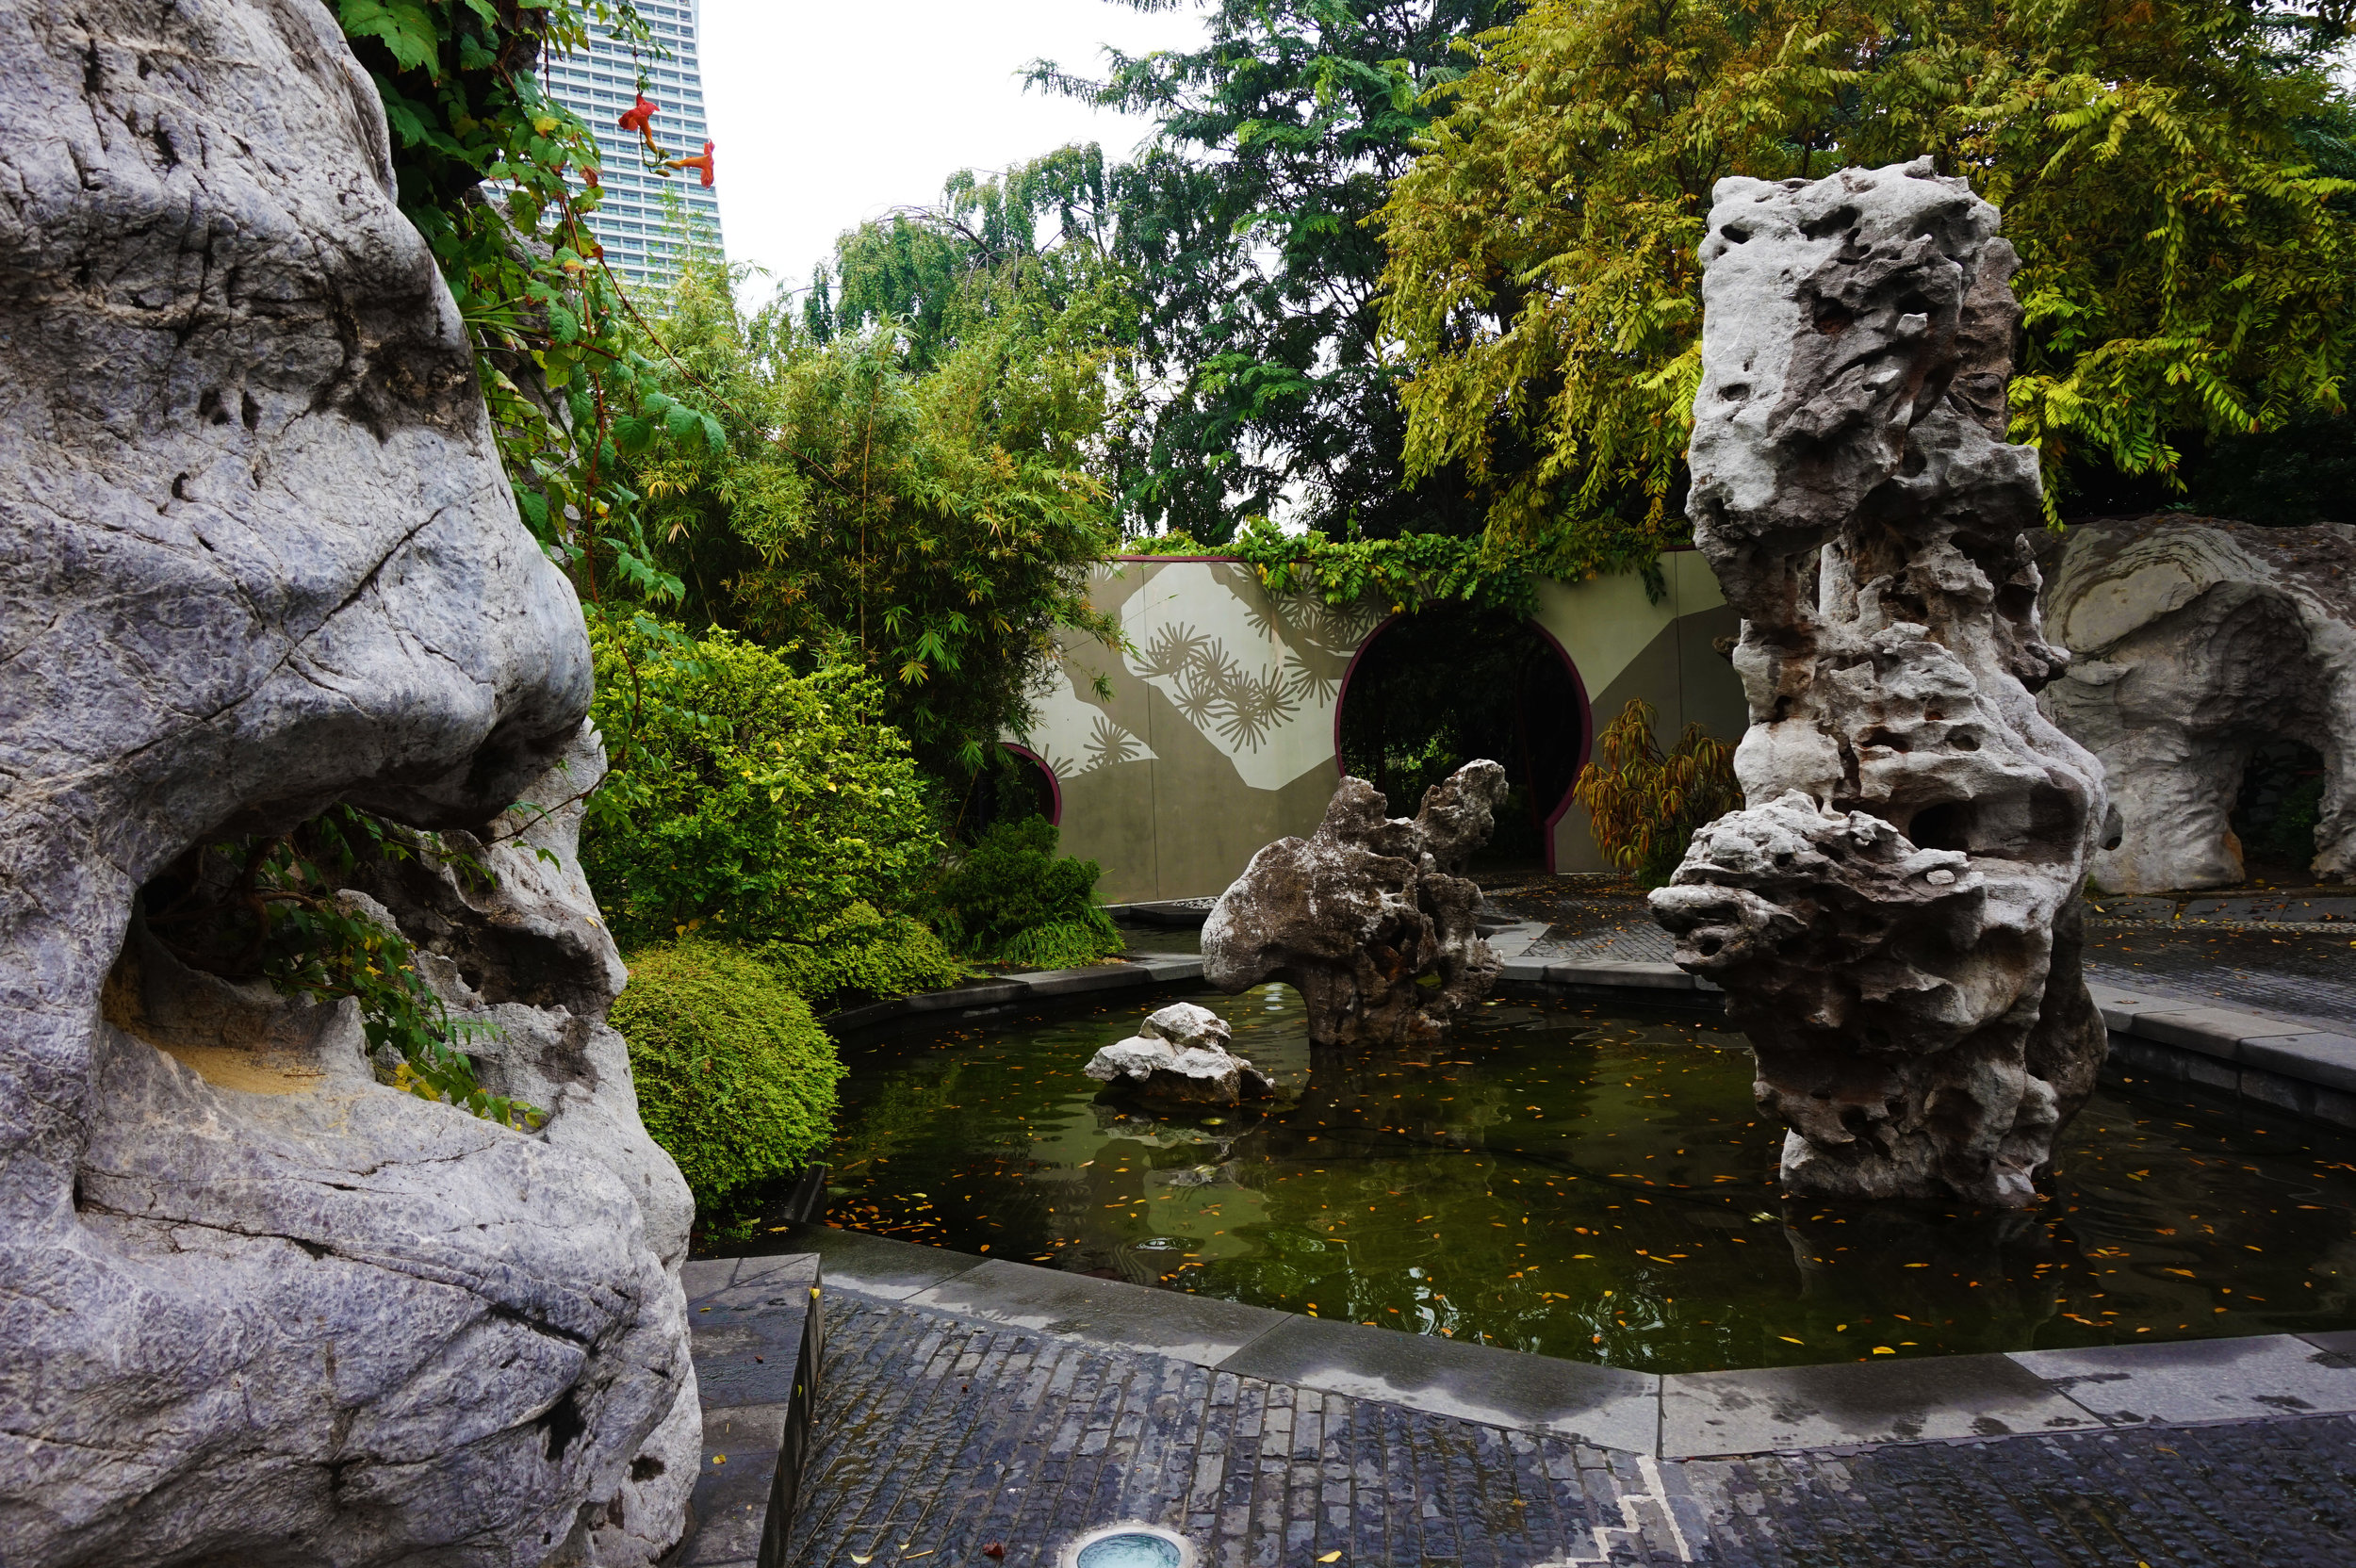 Chinese gardens are built to imitate natural landscapes